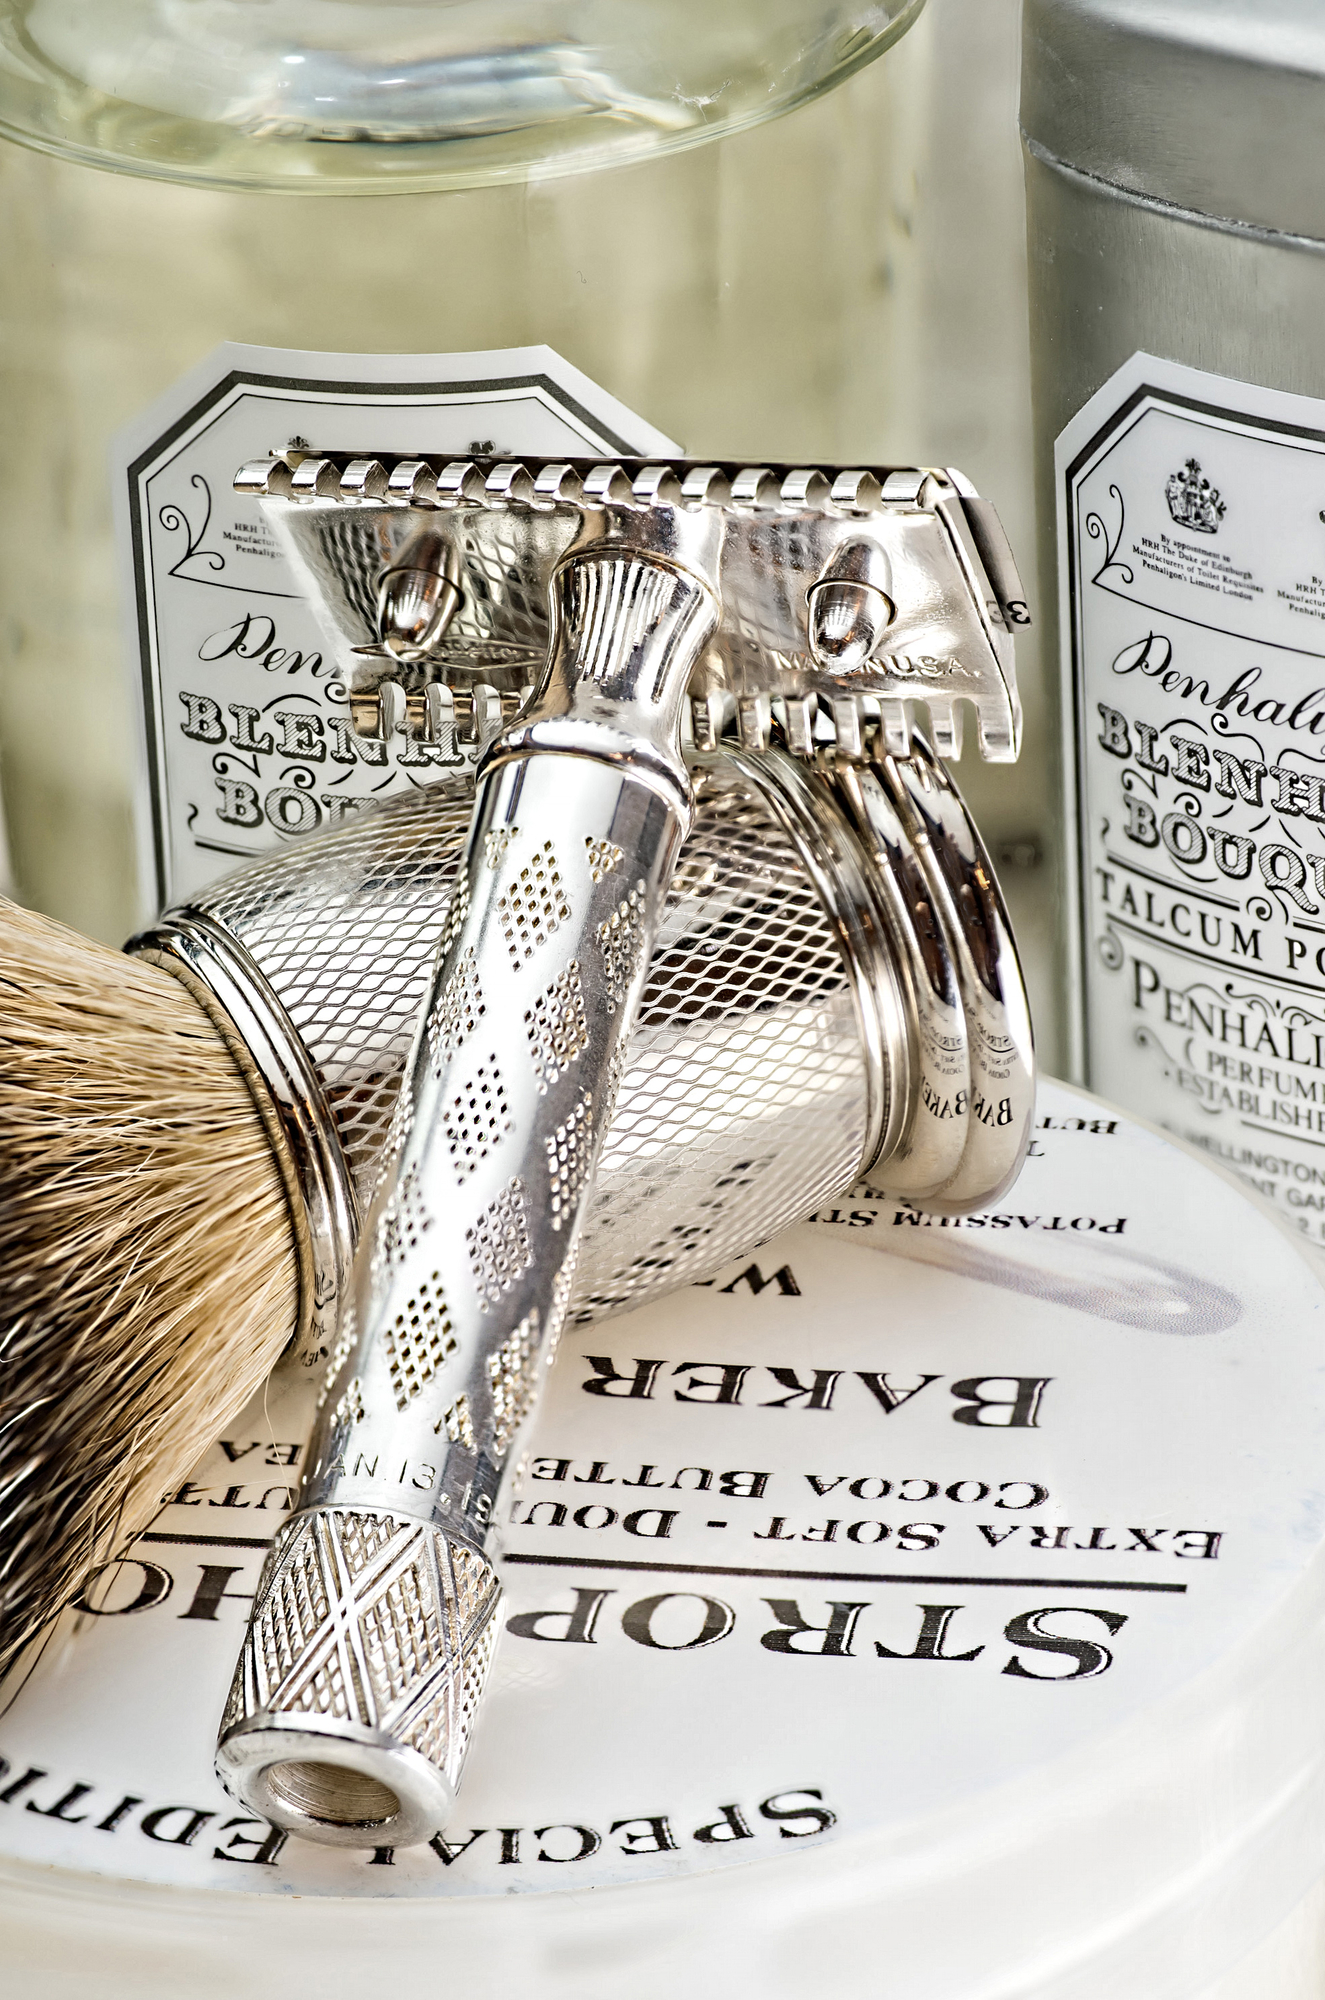 The concept of servitization has moved on radically since Gillette's original business model, but the essence remains the same - image courtesy of Depositphotos.